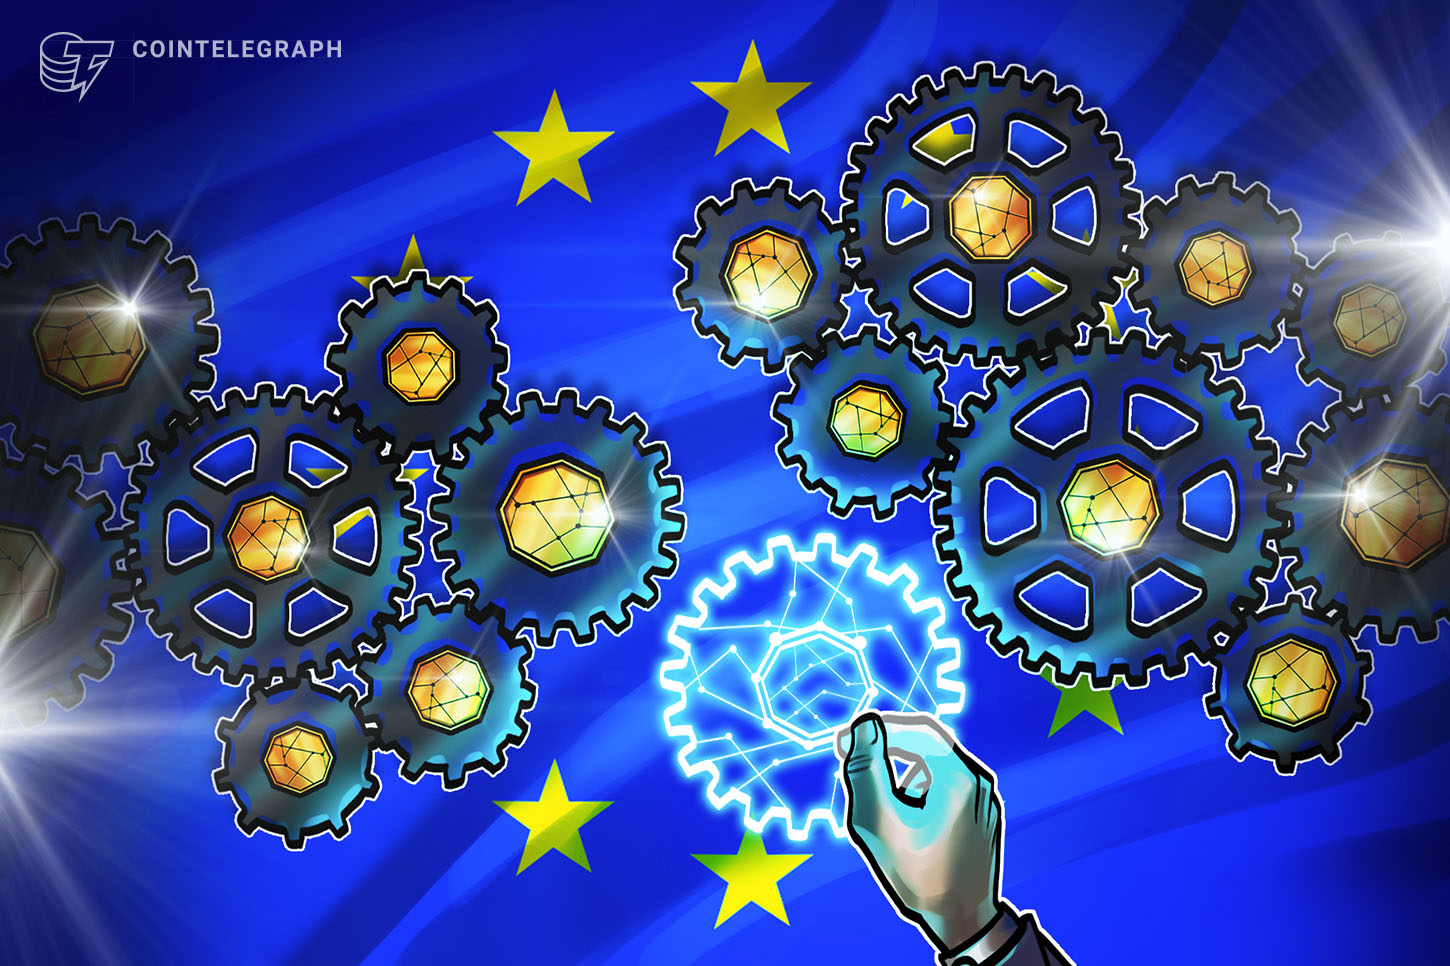 French government pushes for one agency to regulate crypto across the EU